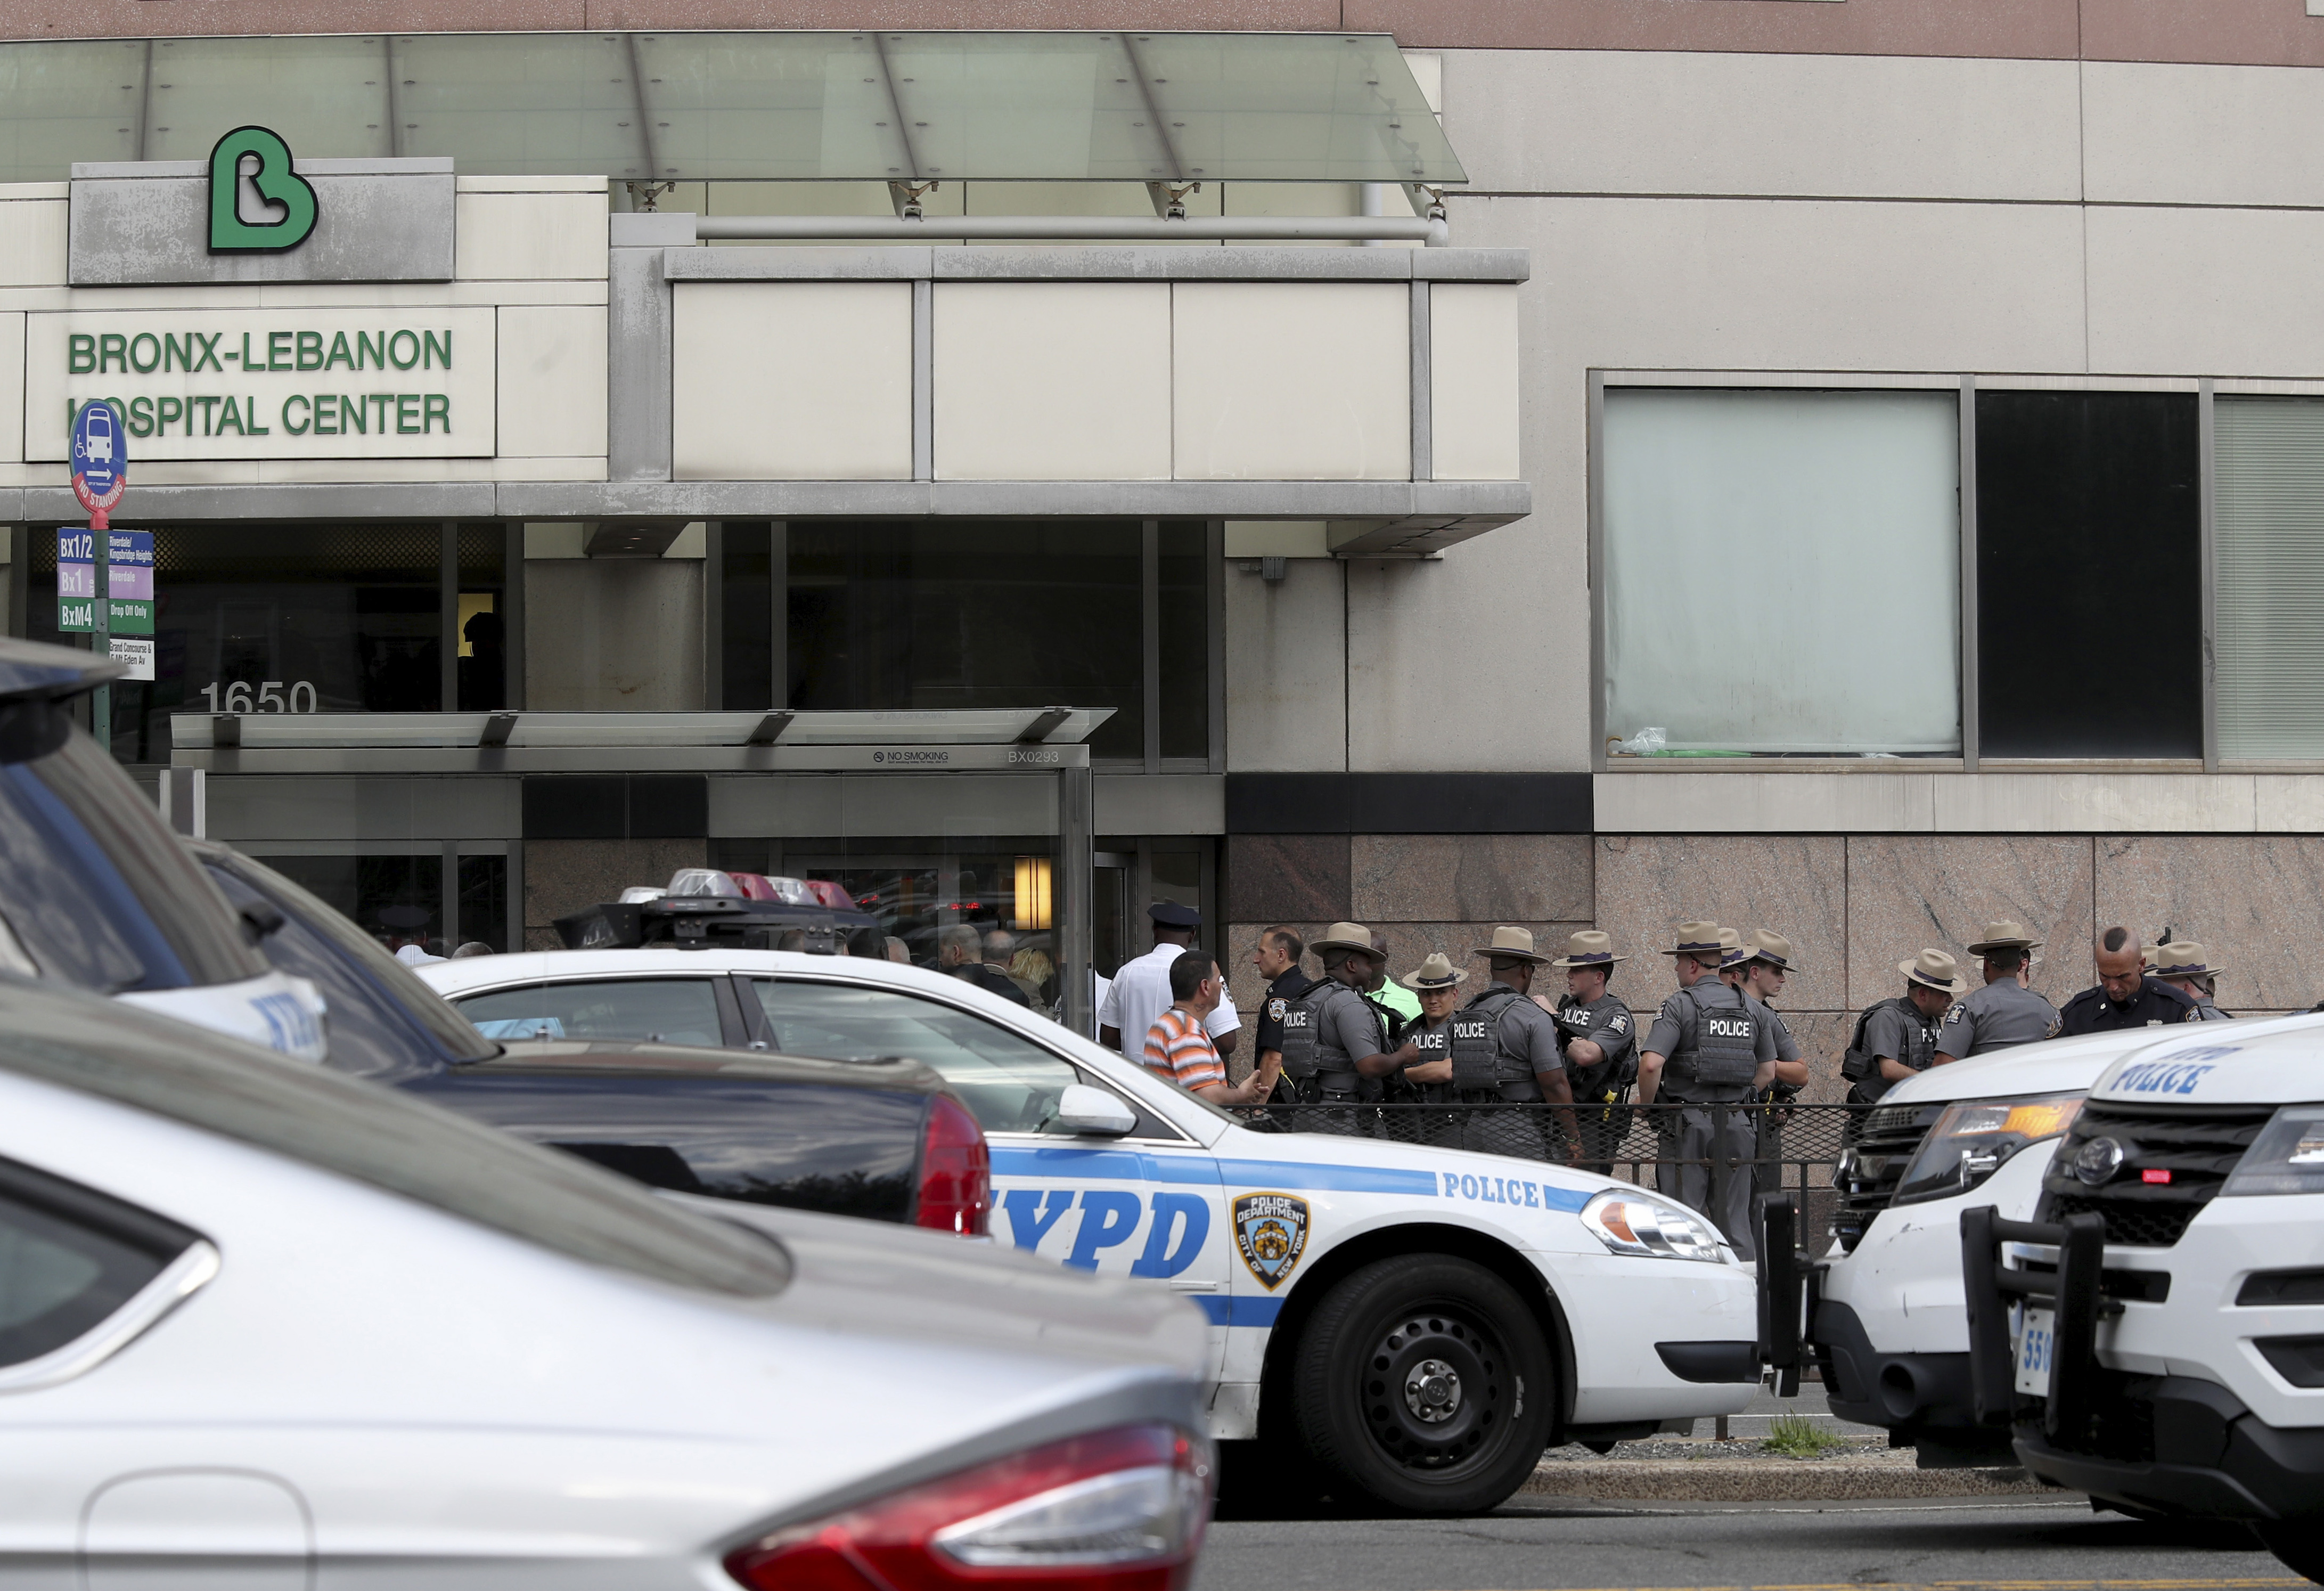 Police gather outside Bronx Lebanon Hospital in New York after a gunman opened fire and then took his own life there on Friday, June 30, 2017. (AP Photo/Mary Altaffer)